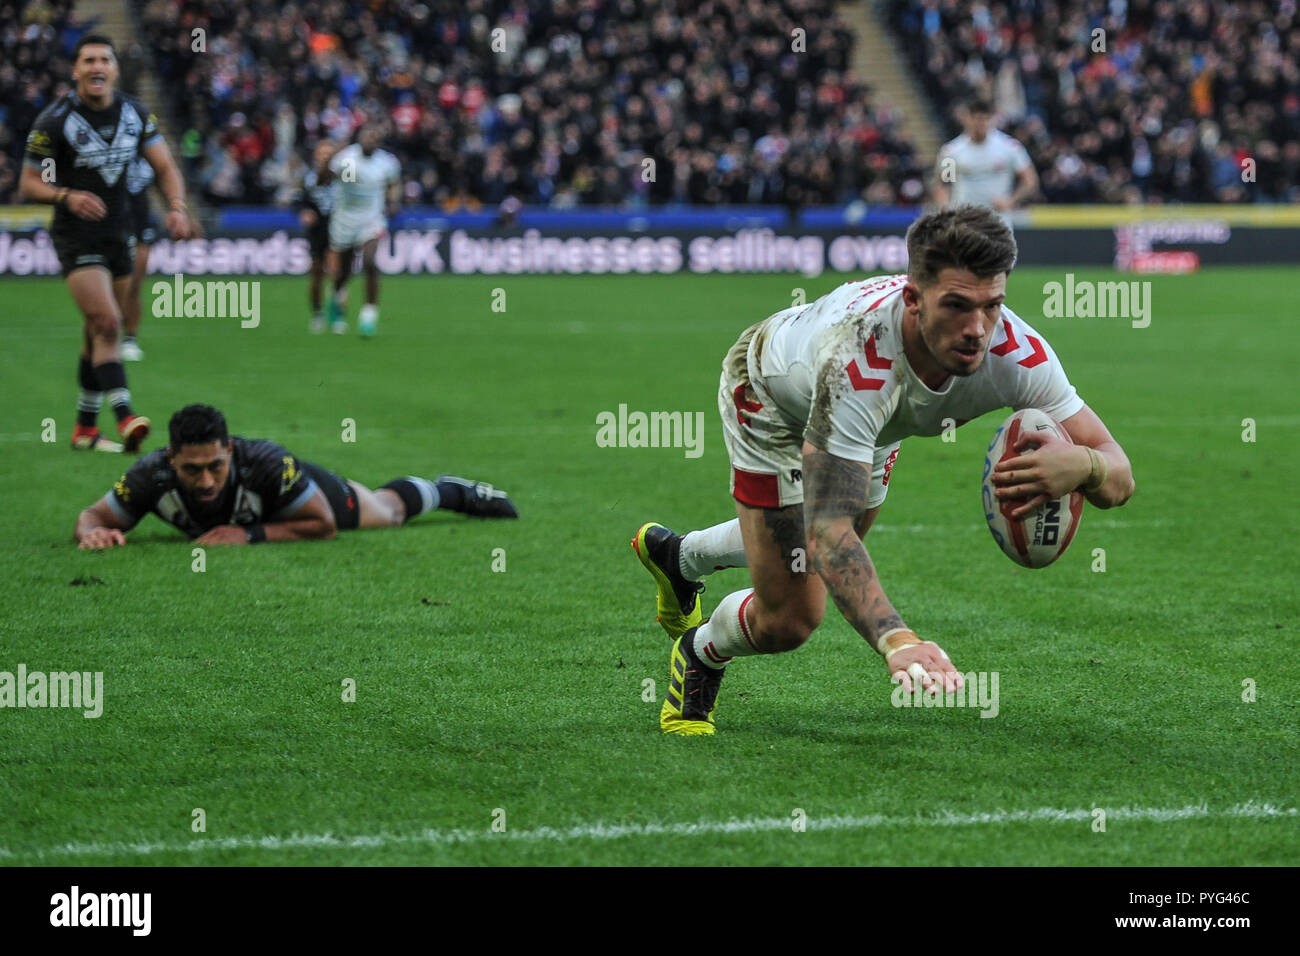 Hull, UK, 27 10 2018. 27 October 2018. KCOM Stadium, Hull, England; Rugby League Dacia International, England vs New Zealand; England's Oliver Gildart scores the match winner in a close encounter with New Zealand.  Photo:Dean Williams Credit: Dean Williams/Alamy Live News Stock Photo